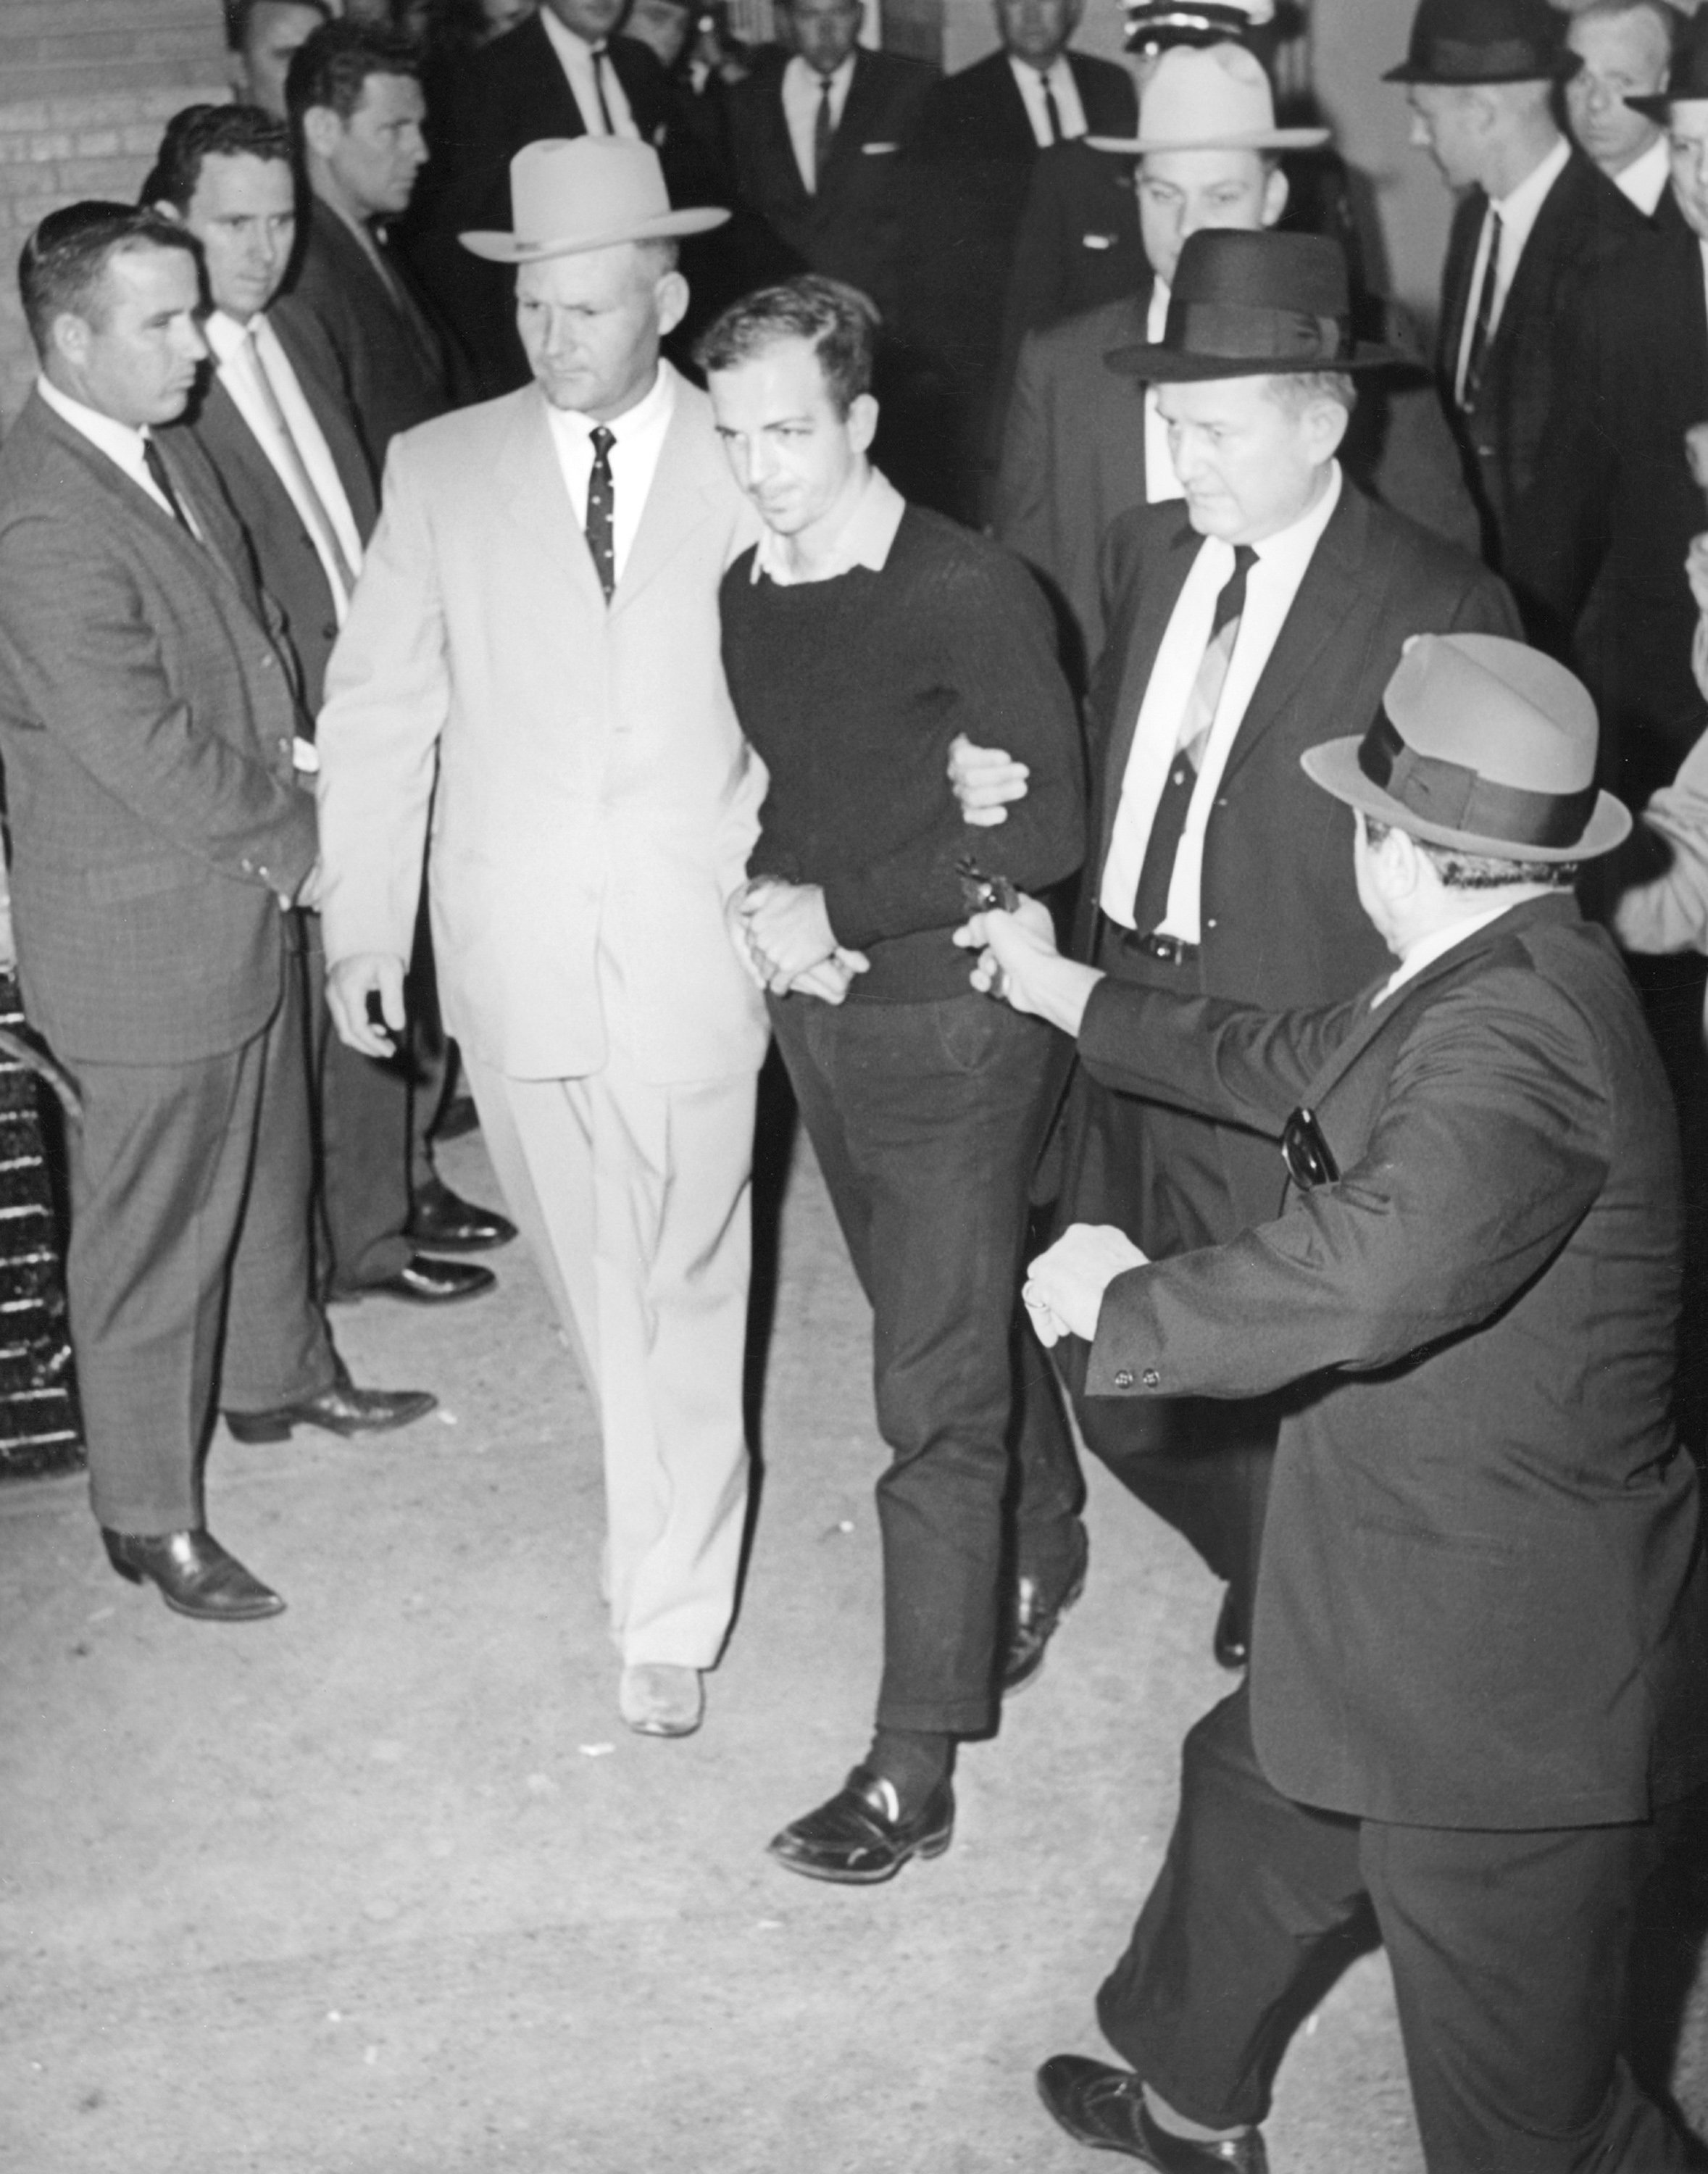 http://upload.wikimedia.org/wikipedia/commons/3/32/Lee_Harvey_Oswald_being_shot_by_Jack_Ruby_as_Oswald_is_being_moved_by_police,_1963.jpg